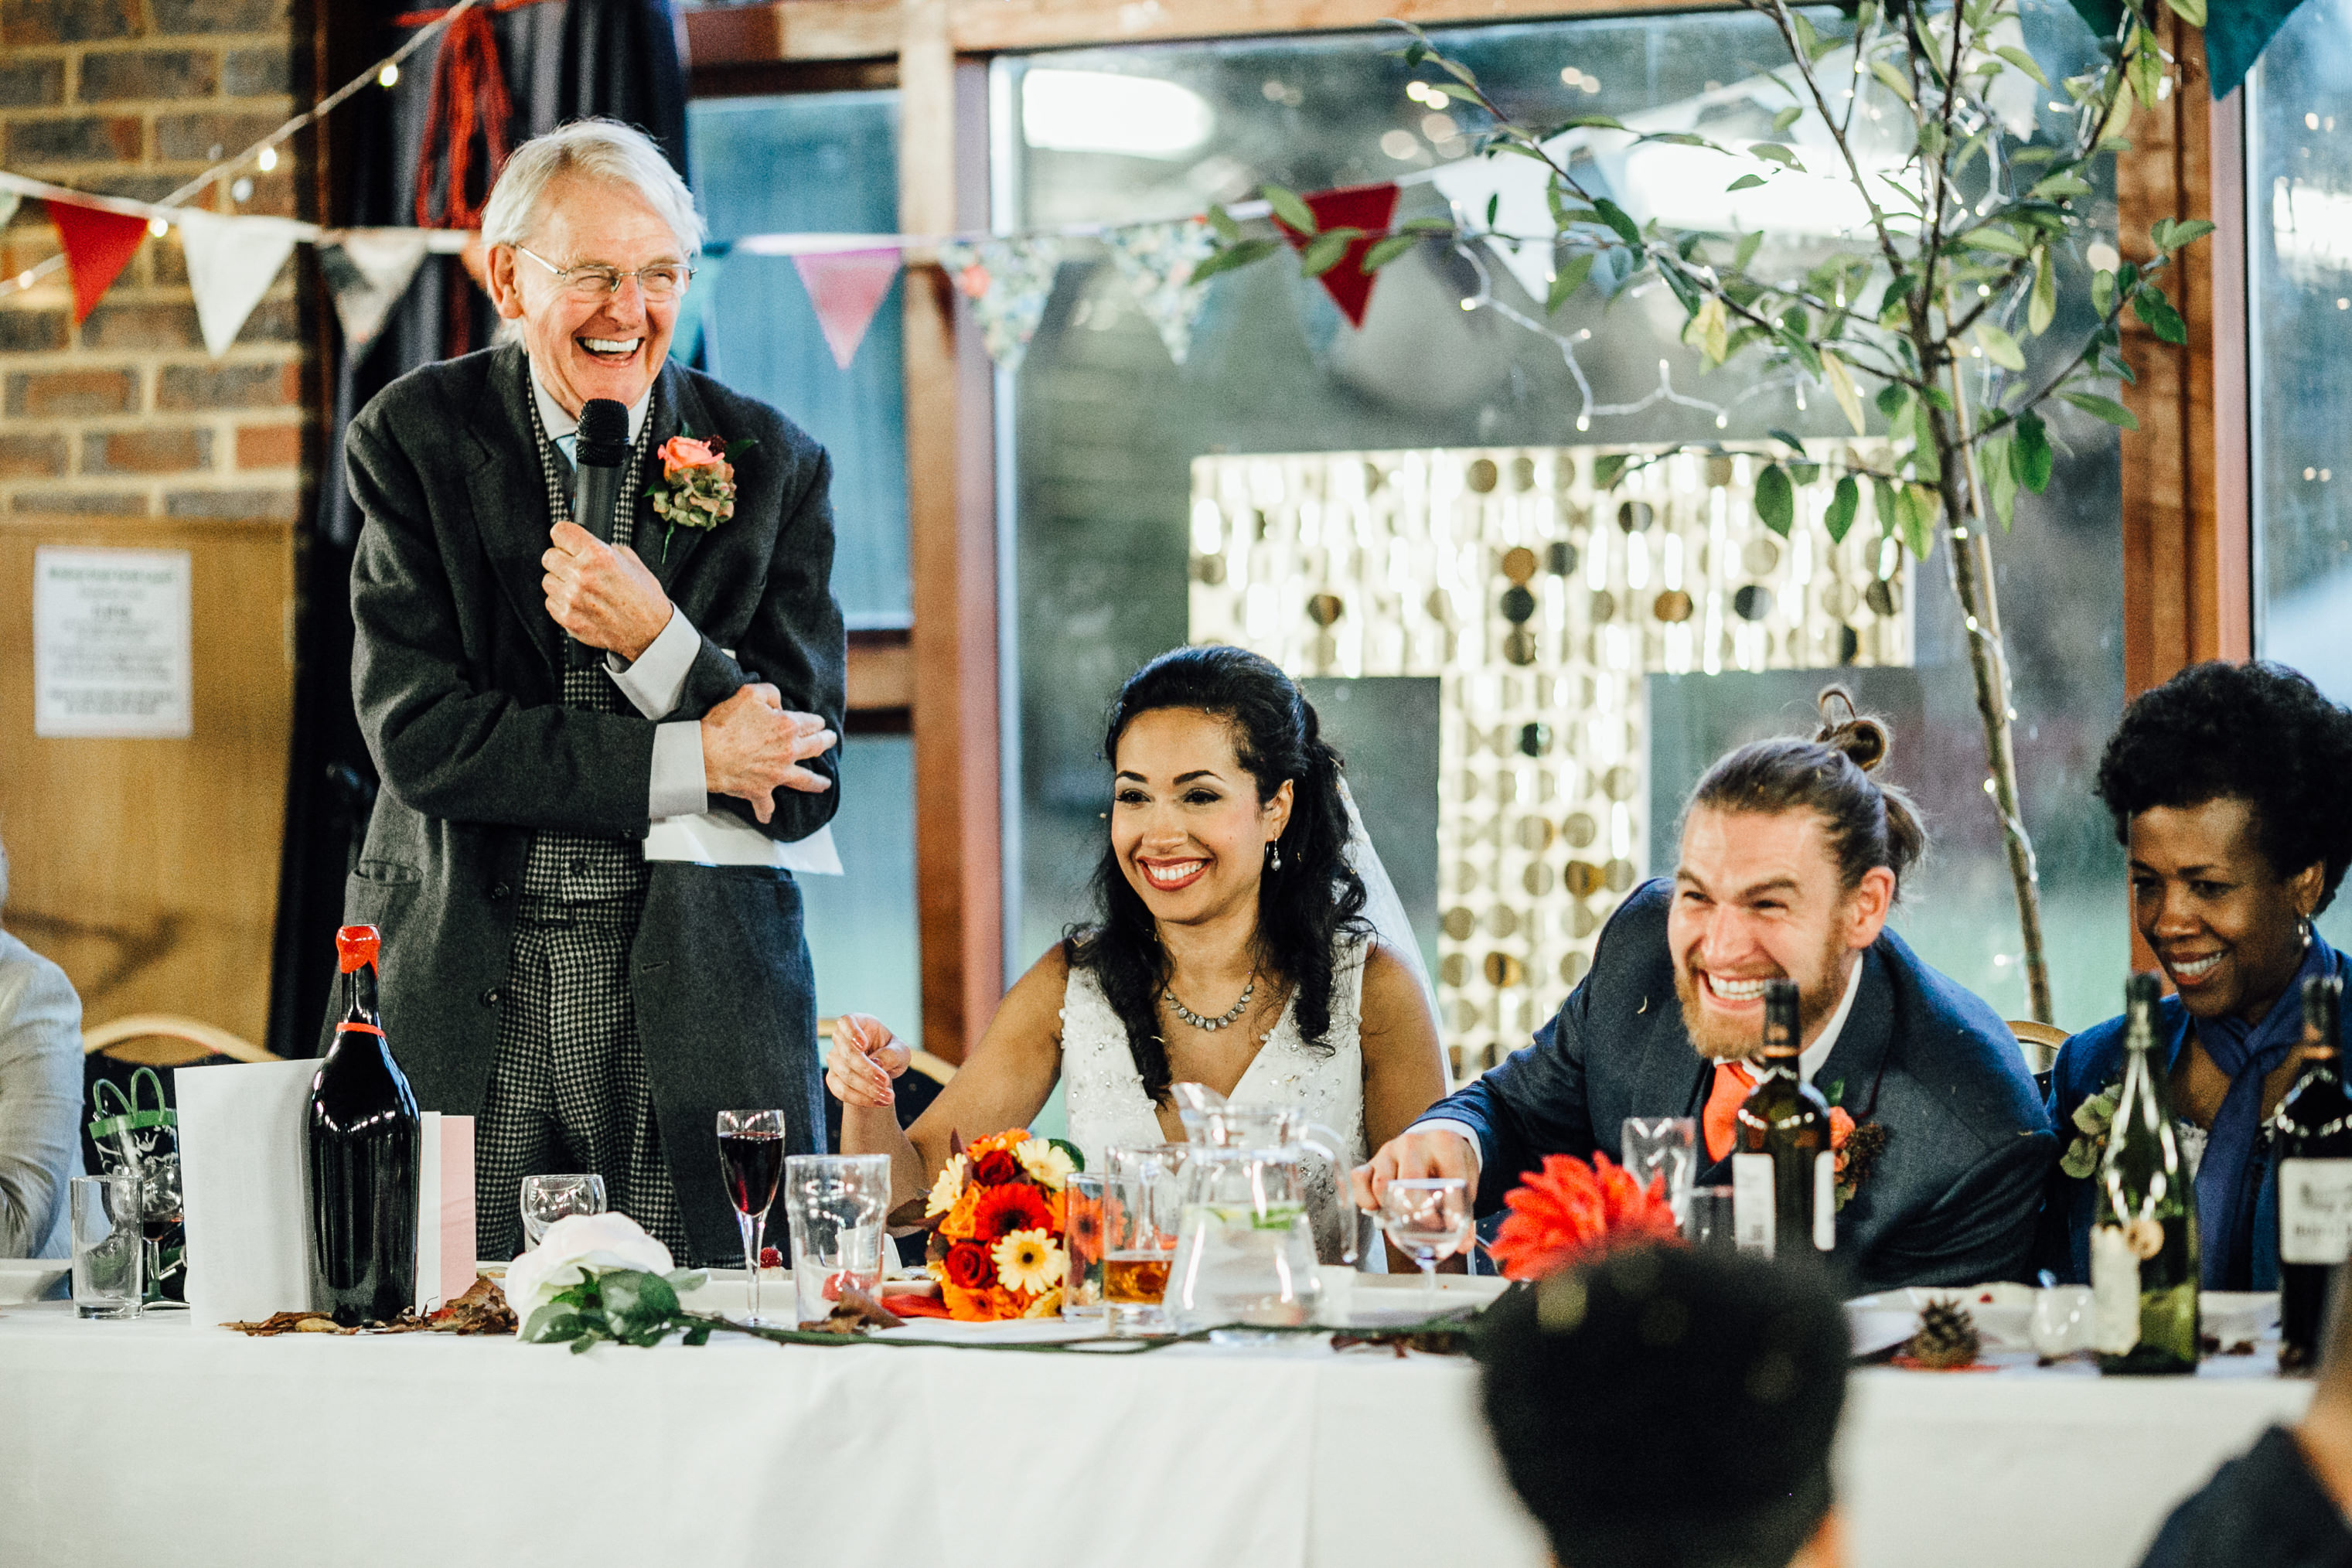 quirky fun autumn wedding in london wedding photographer documentary style speeches